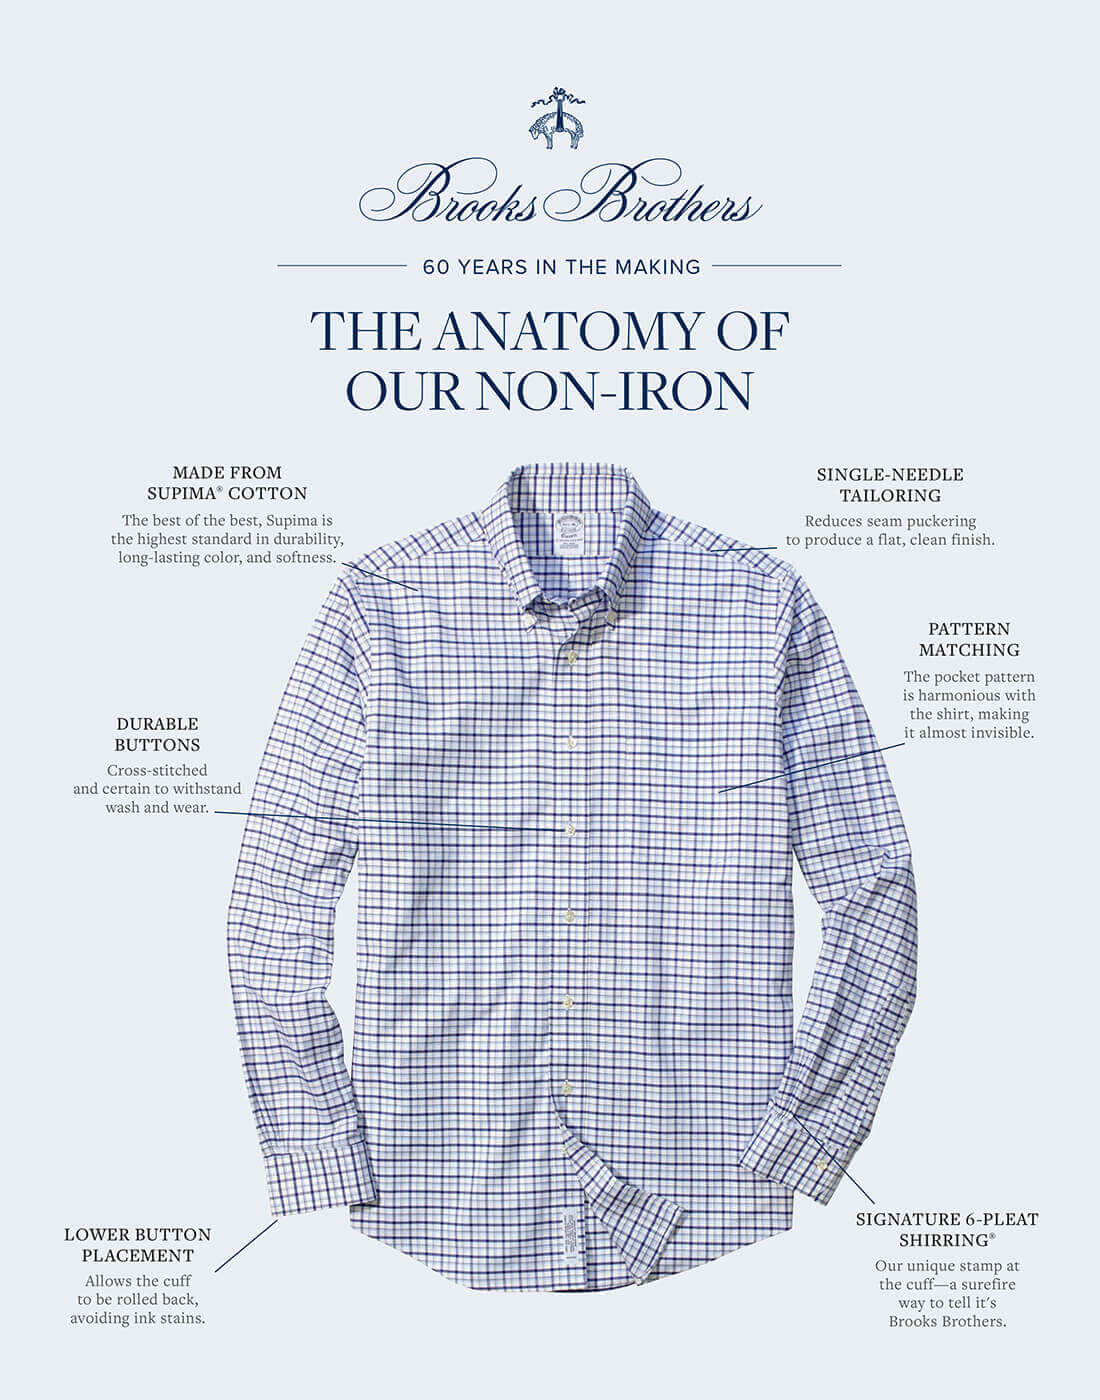 Anatomy of the Non-Iron Shirt image (1)